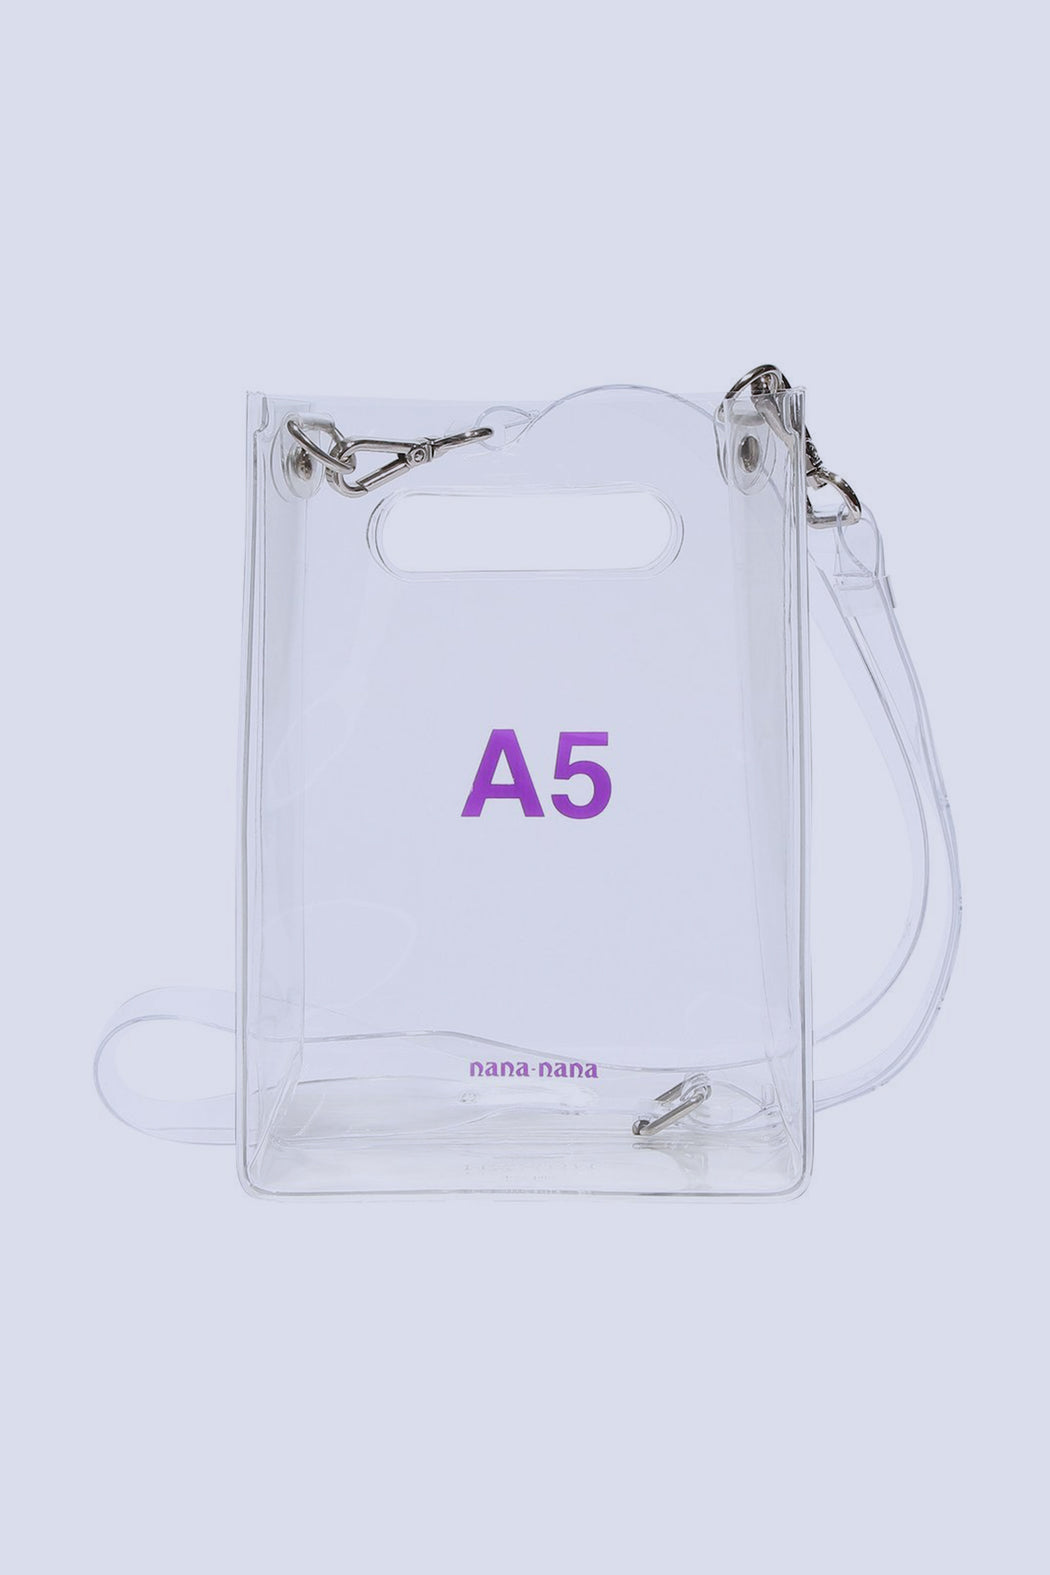 A5 transparent bag